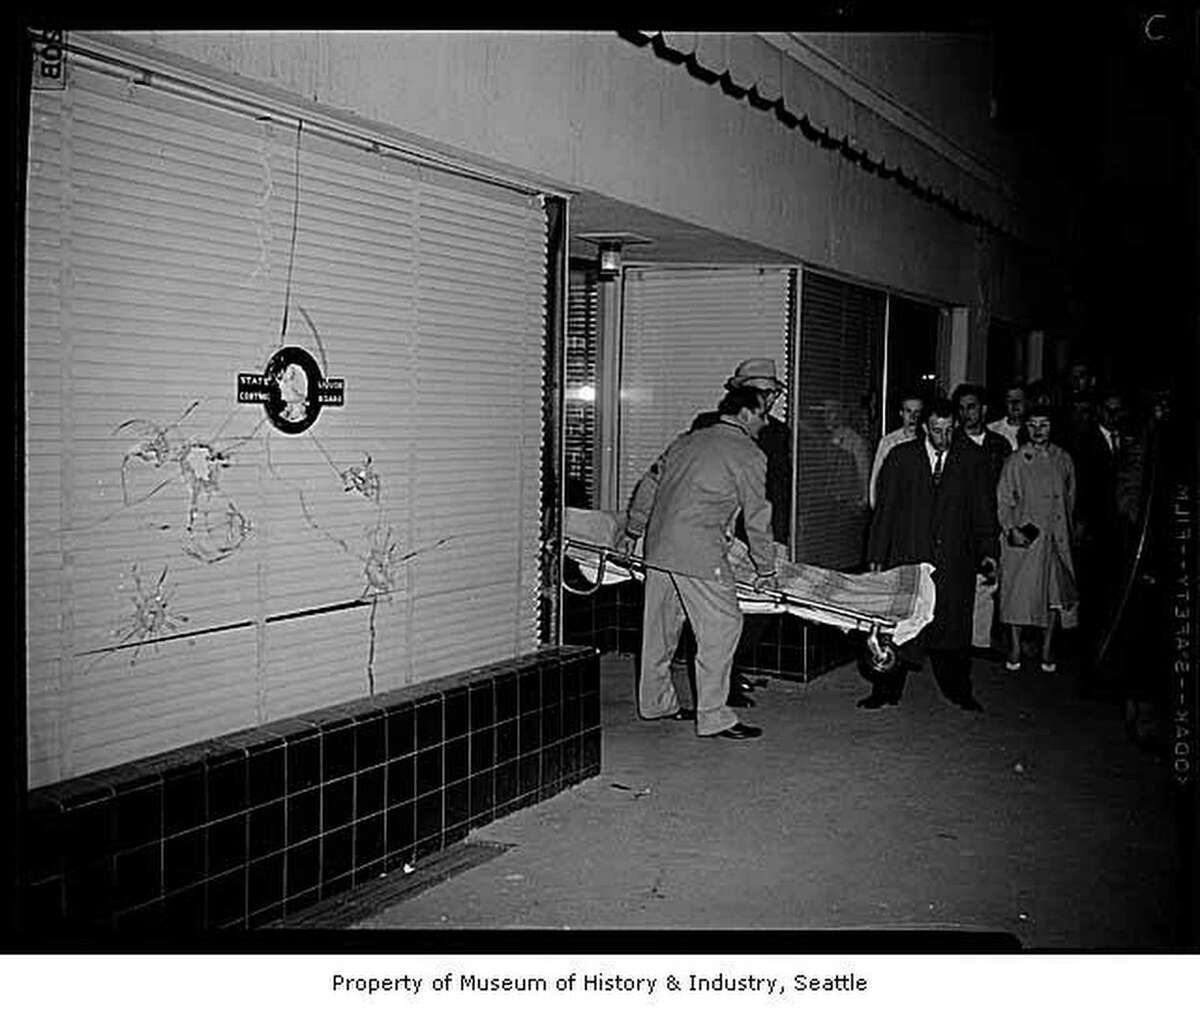 Two robbers forced their way into the White Center State Liquor Store after closing time on Saturday night, April 4, 1959. Three store employees were forced to lie on the floor behind the counter while the chief clerk of the store, Gino Giuntoli, stalled for time while opening the safe at gunpoint. King County deputies Jack Triplett and Jim Foley and reserve deputies M. A. Christopherson and William Hayden arrived on the scene while the robbery was in progress. Christopherson and Triplett entered the rear of the store and fired at the robbers in front of the store counter. One of Triplett's bullets fatally wounded Michael L. Mooney, 48. After a shootout on the sidewalk with the other two officers, the second robber fled the scene with $2,000 of the $6,000 taken from the safe. Mooney's body was covering a cardboard box containing $4,000 of the loot. In this image, the body of liquor store bandit Michael L. Mooney is carried on a stretcher from White Center State Liquor Store at 10034 16th Ave. SW by King County Coroner Leo Sowers (foreground, in jacket) and his deputies. Note the plate glass window at left, riddled with bullet holes.